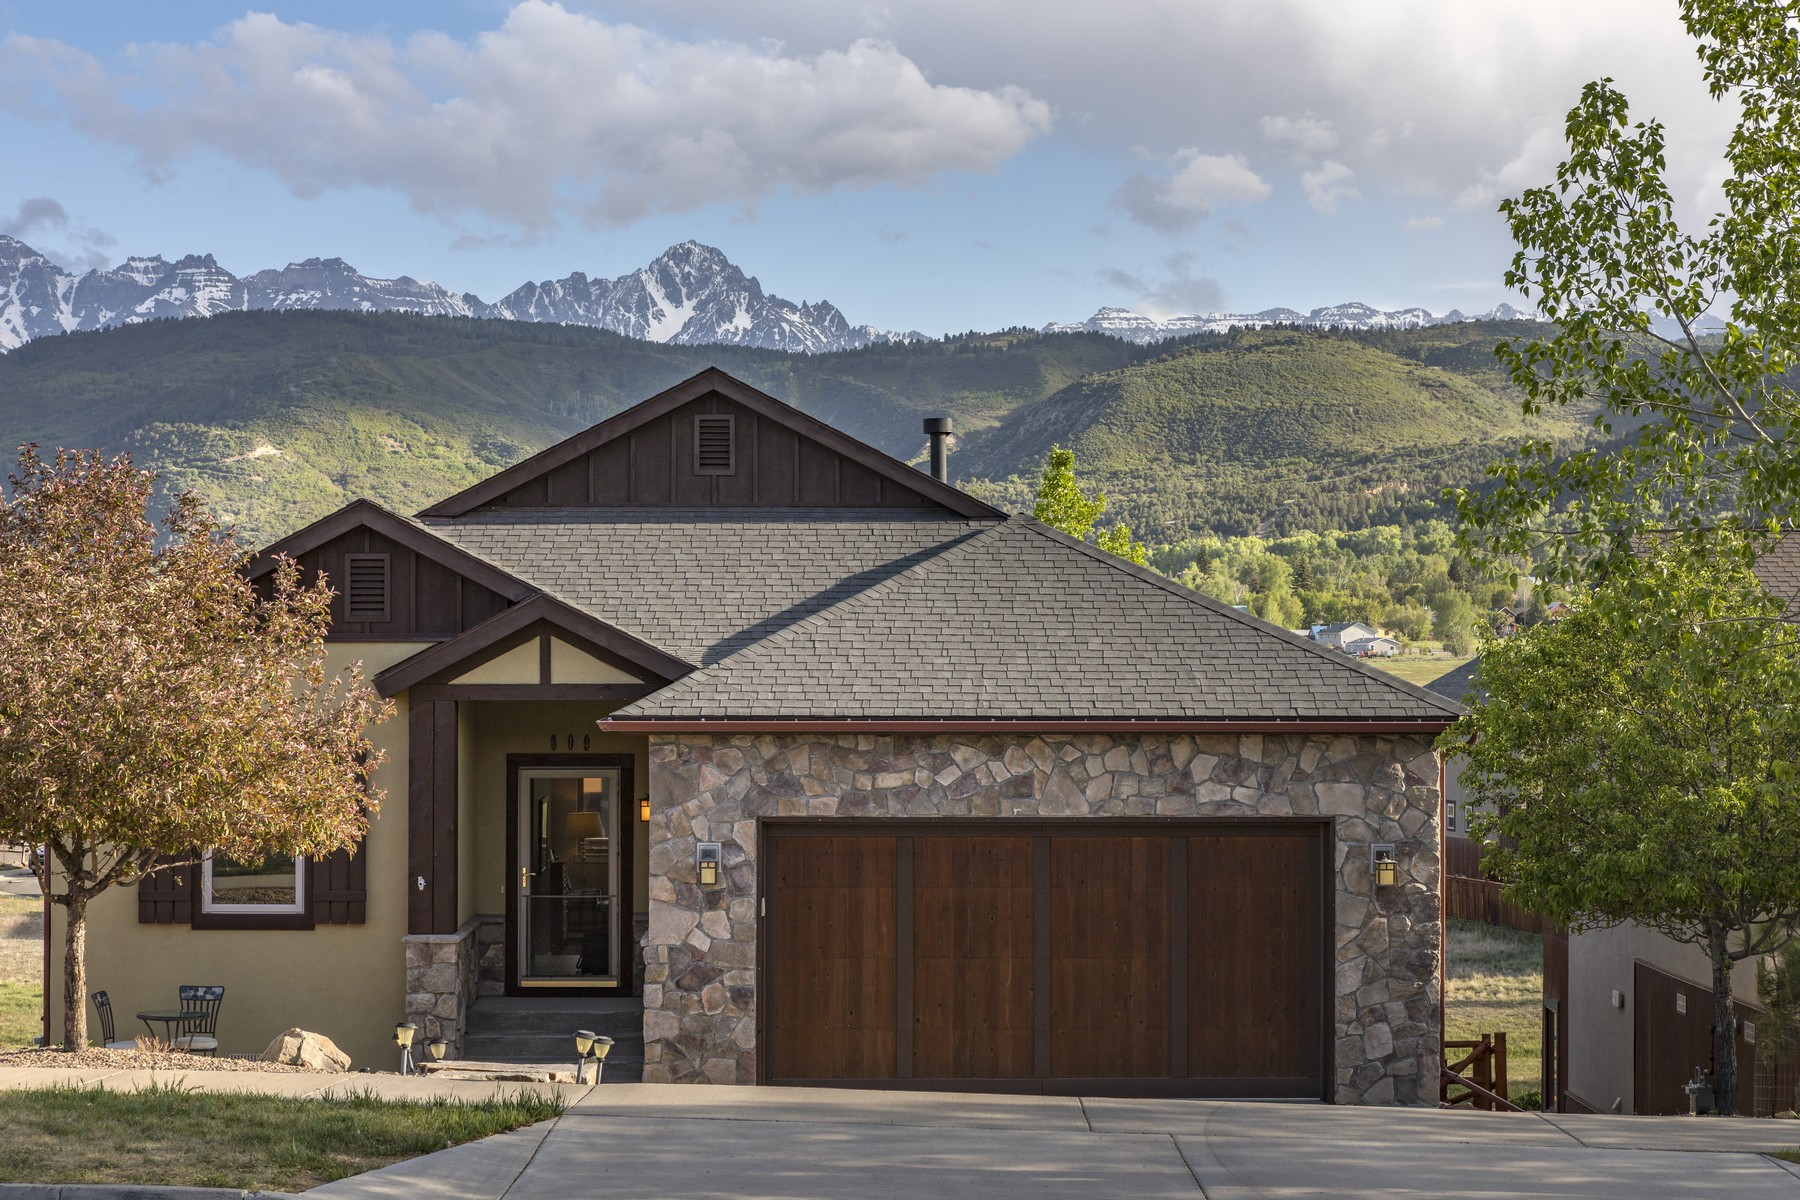 Single Family Home for Active at 614 River Park Drive 614 River Park Drive Ridgway, Colorado 81432 United States